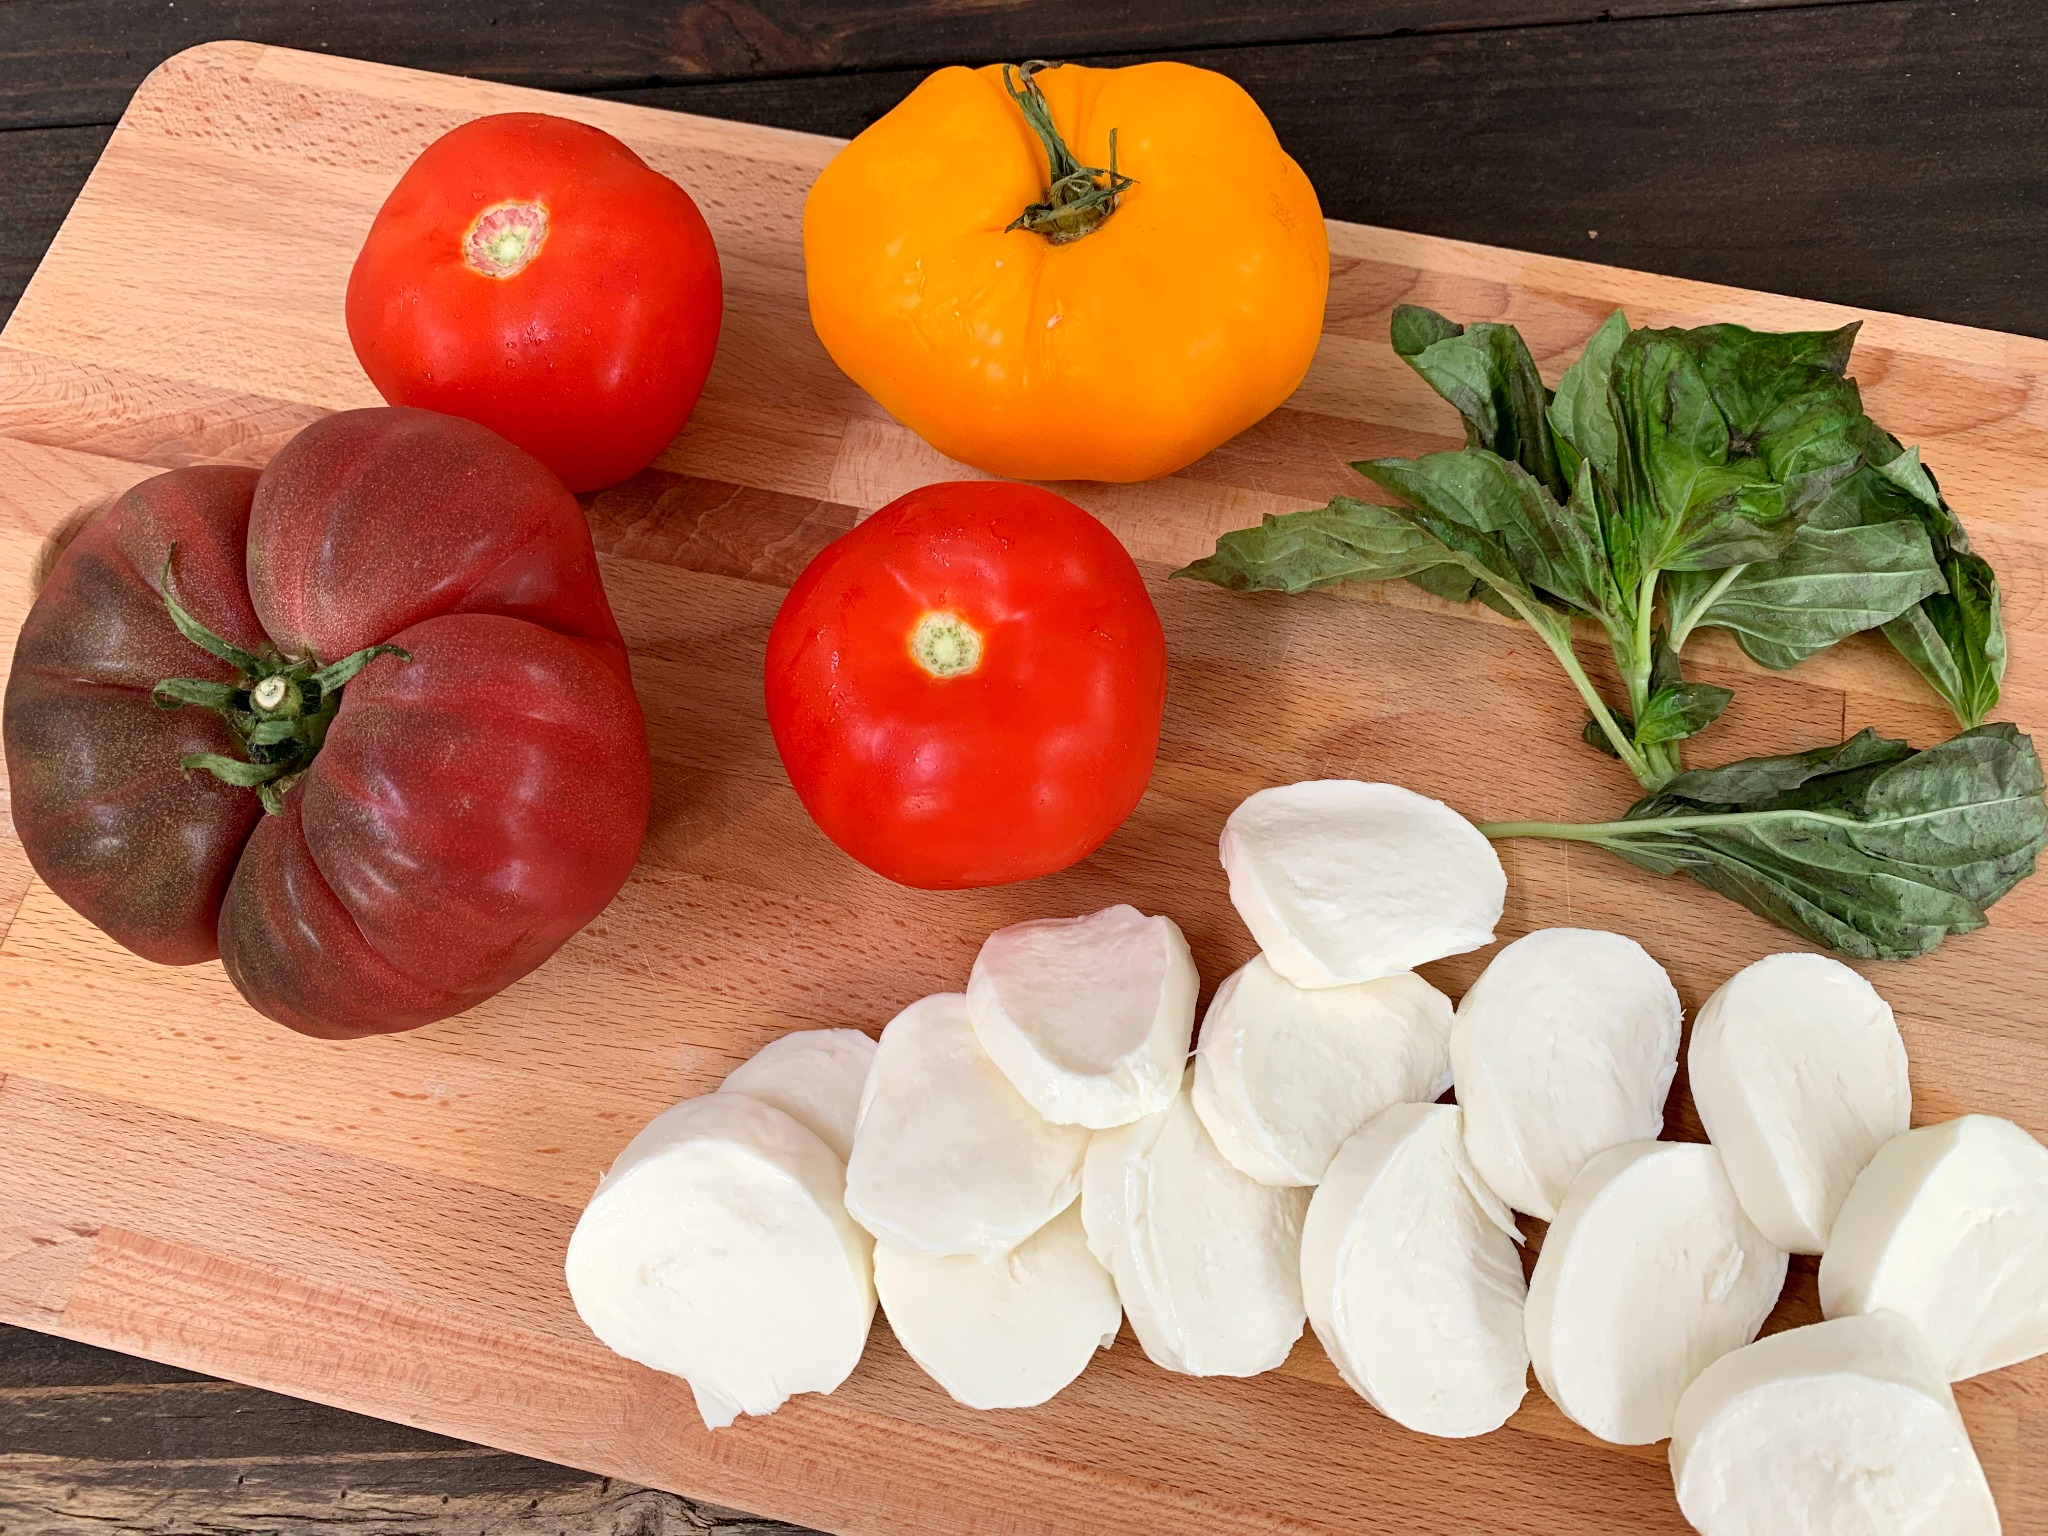 wooden cutting board with whole tomatoes, sliced mozzarella and basil leaves